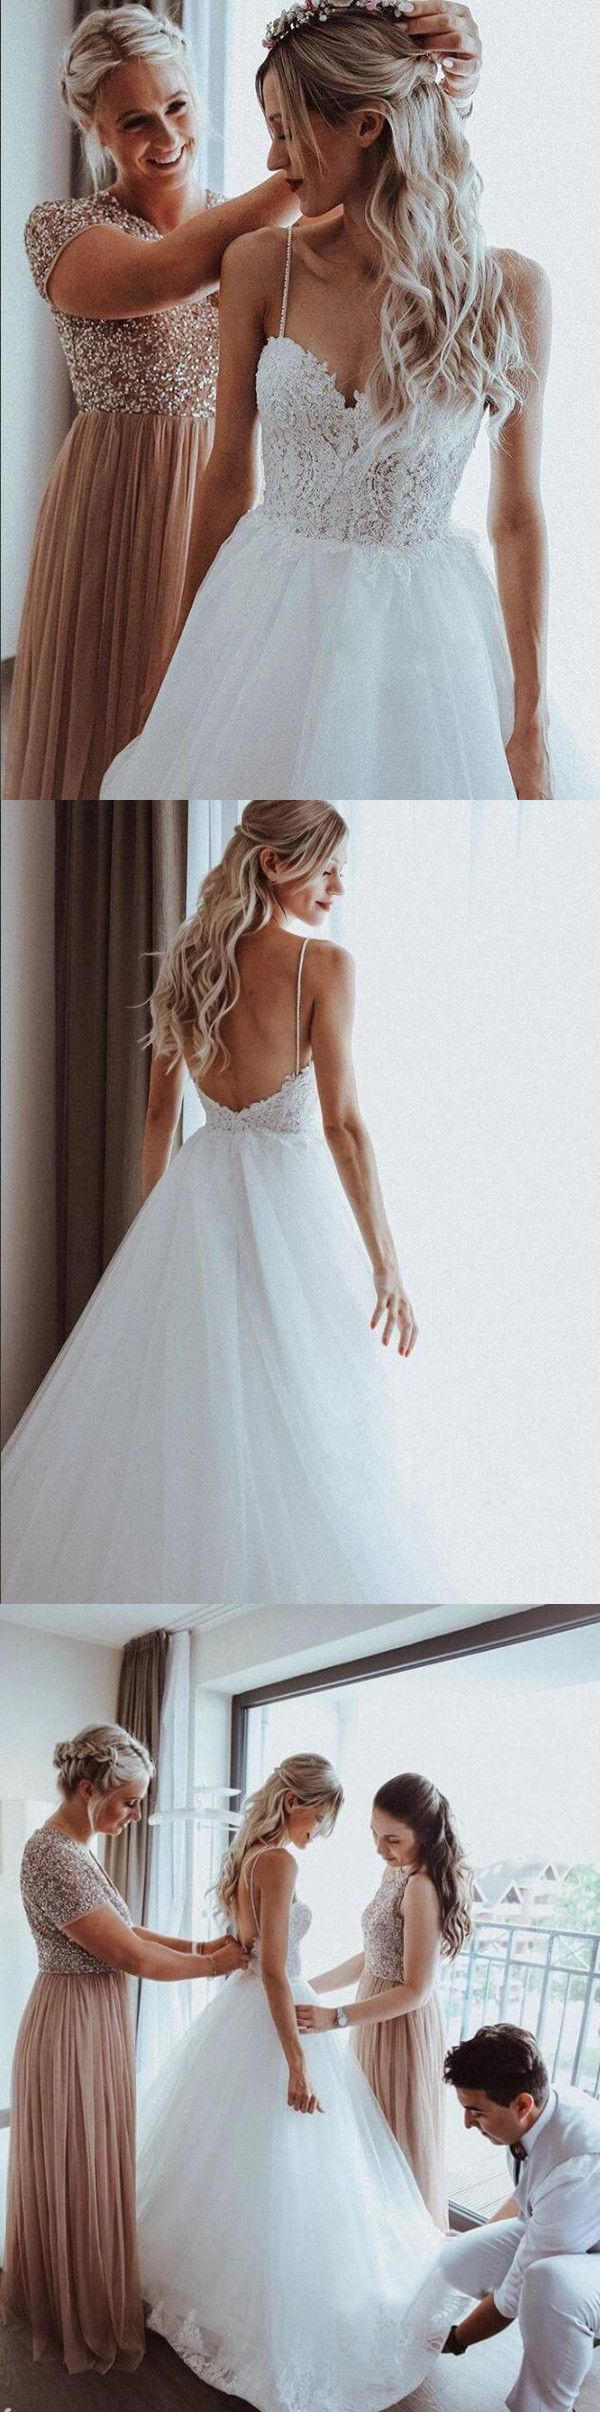 Ivory A Line Wedding Dress Cheap Tulle Beach Wedding Dress Vb5081 A Line Wedding Dress Cheap Dresses Lace Wedding Dress Vintage